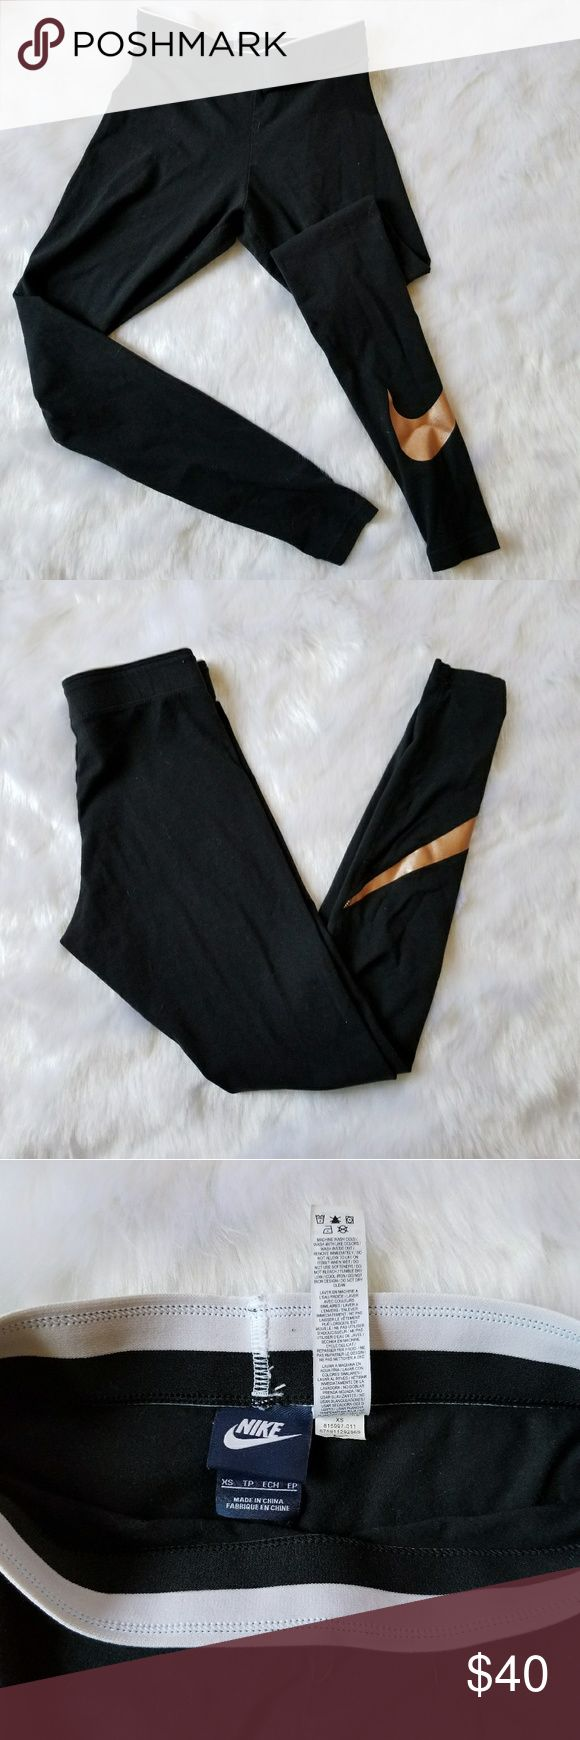 """Nike Gold Swoosh Active Leggings Super cute Nike legging with gold check  Love the contrast of the gold and black  No flaws Only tried on didn't fit me sadly Will fit between XS-S Im 5'1"""" and did not fit me cropped Nike Pants Leggings"""